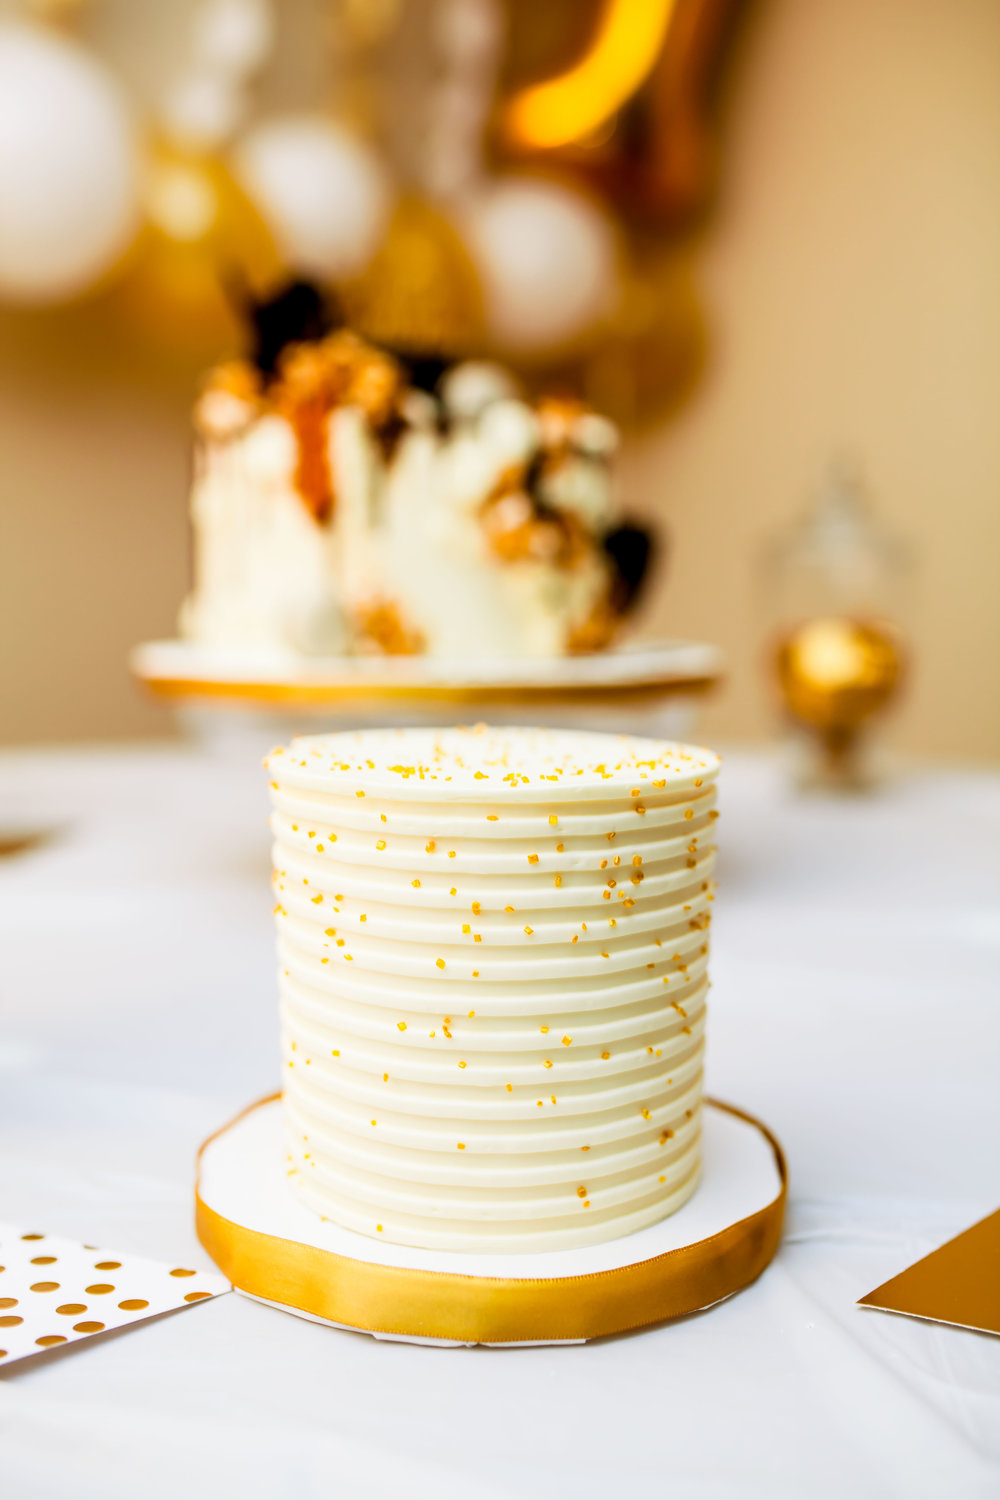 Le dolci cake toronto photographer Birthday Photographer Toronto Party Event Photographer Muslim DIY decor cute 2017 Eritrean Somali Ontario Le dolci Ideas Karimah Gheddai Photography cake drip cake